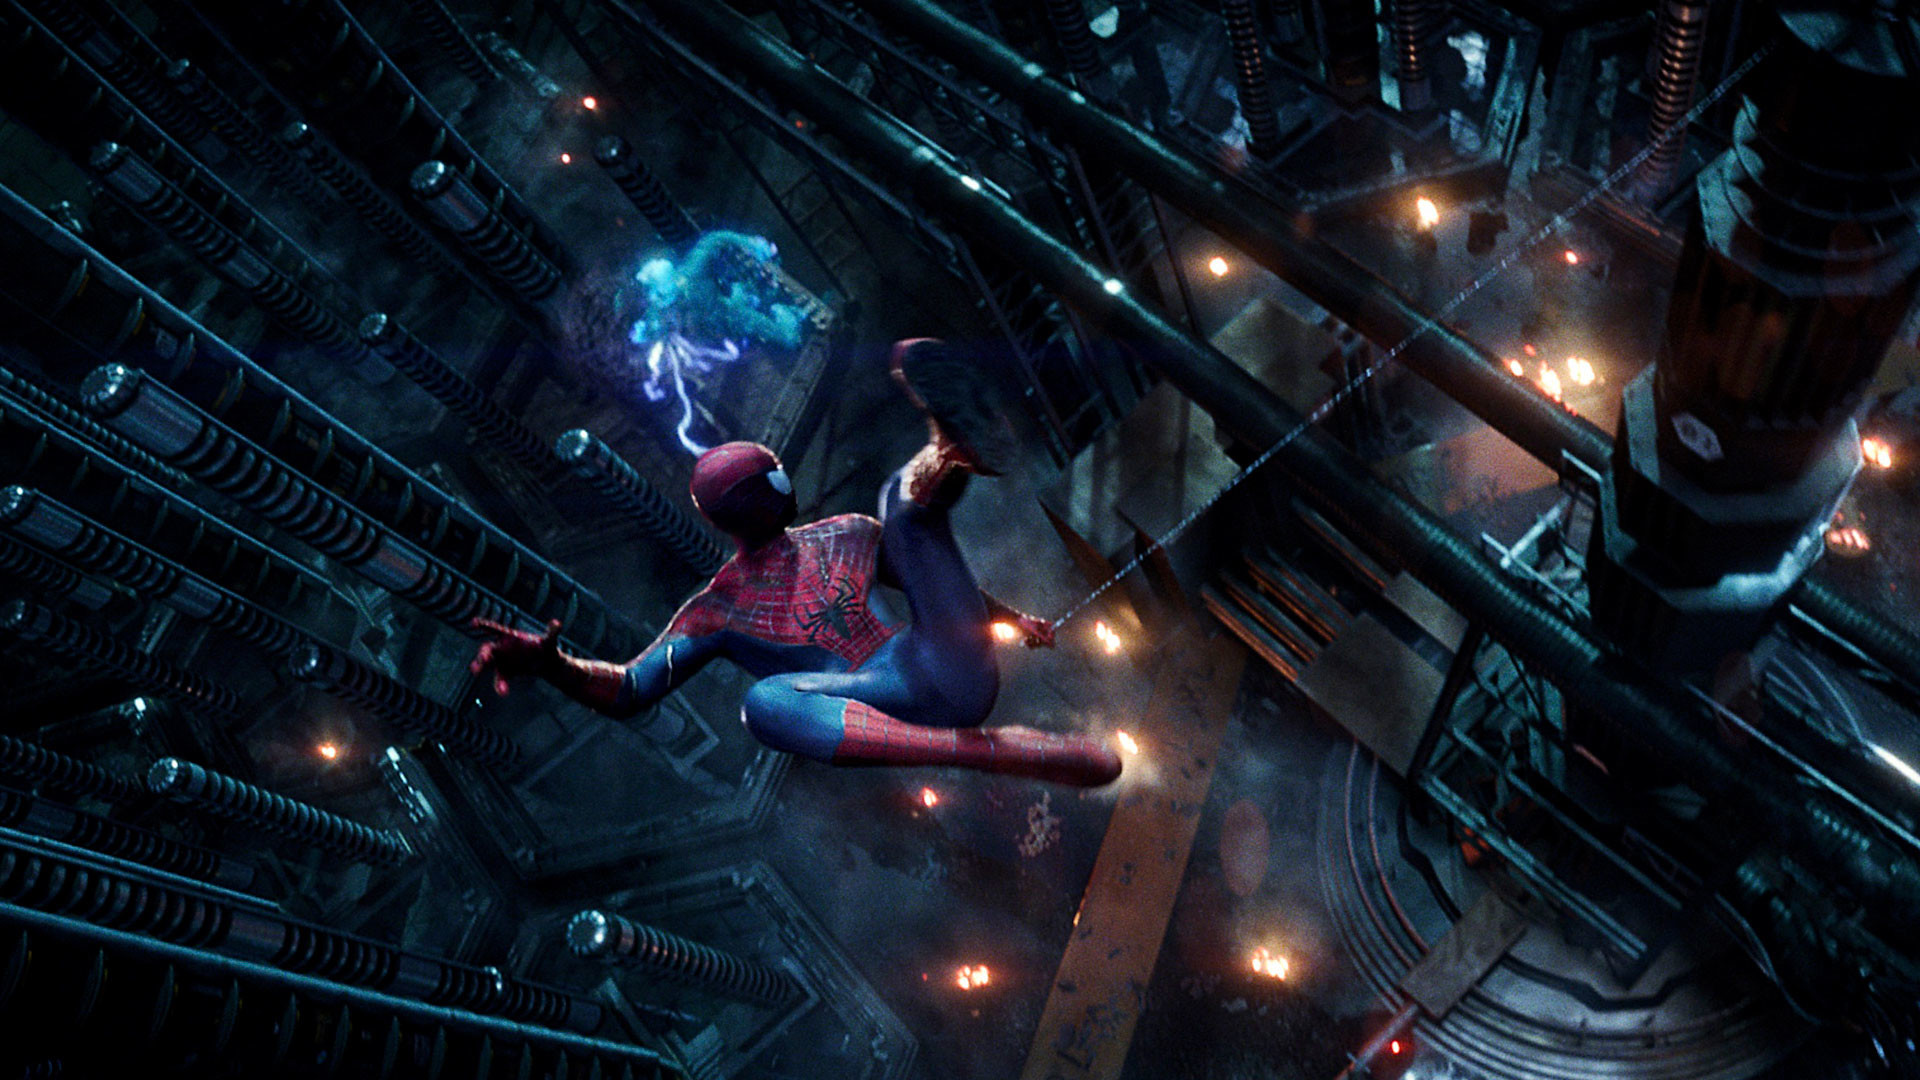 hd pics photos best flying spiderman hollywood movie hd quality desktop  background wallpaper